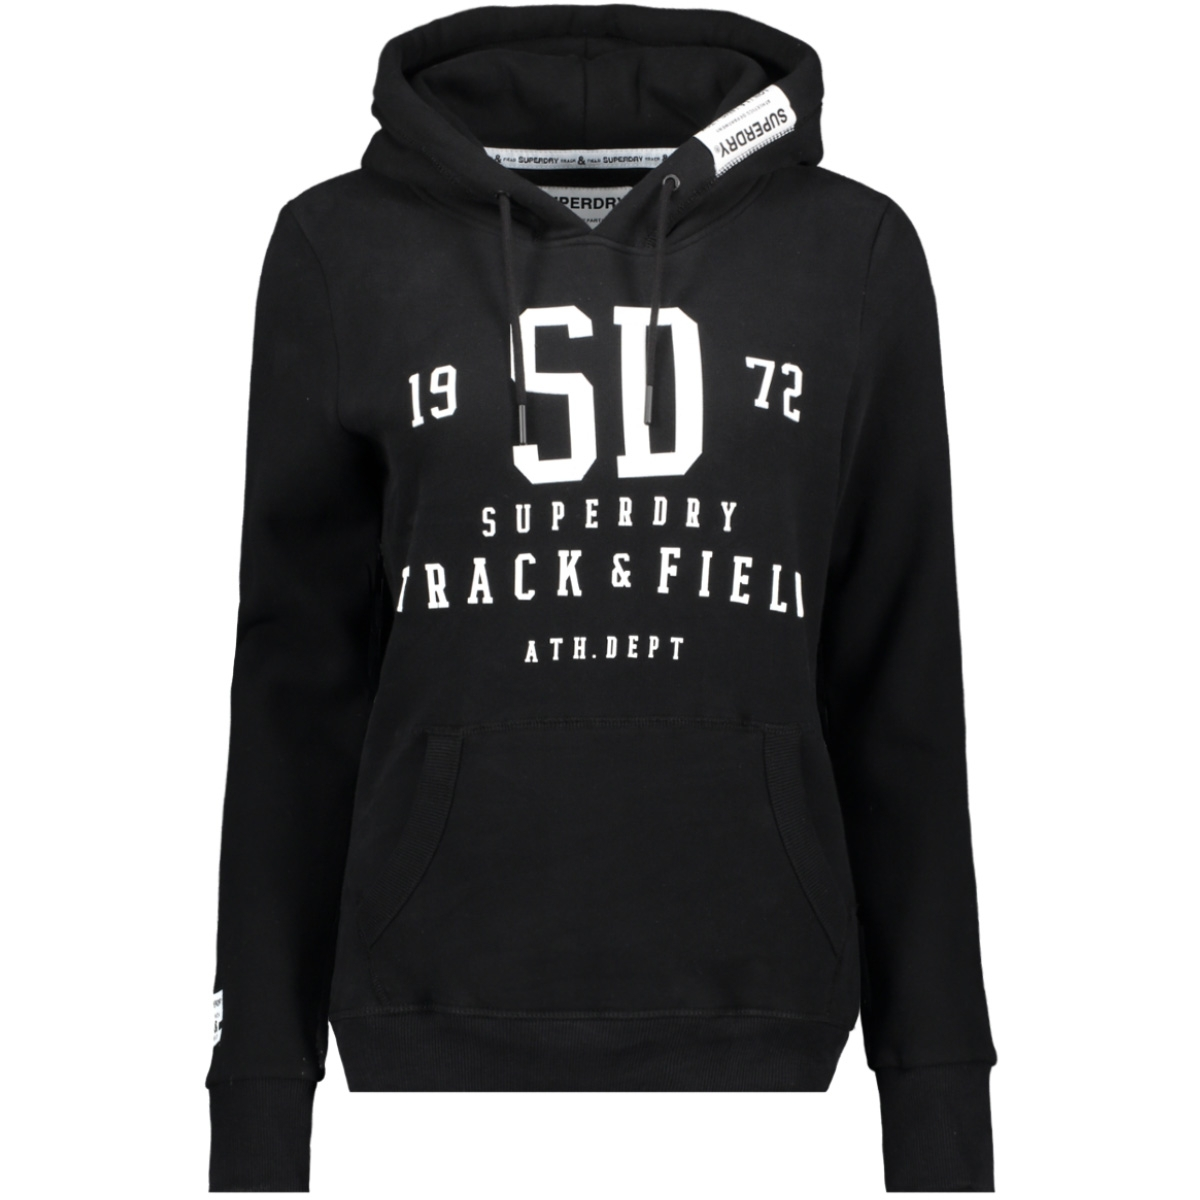 track and field hood w2000049a superdry sweater black